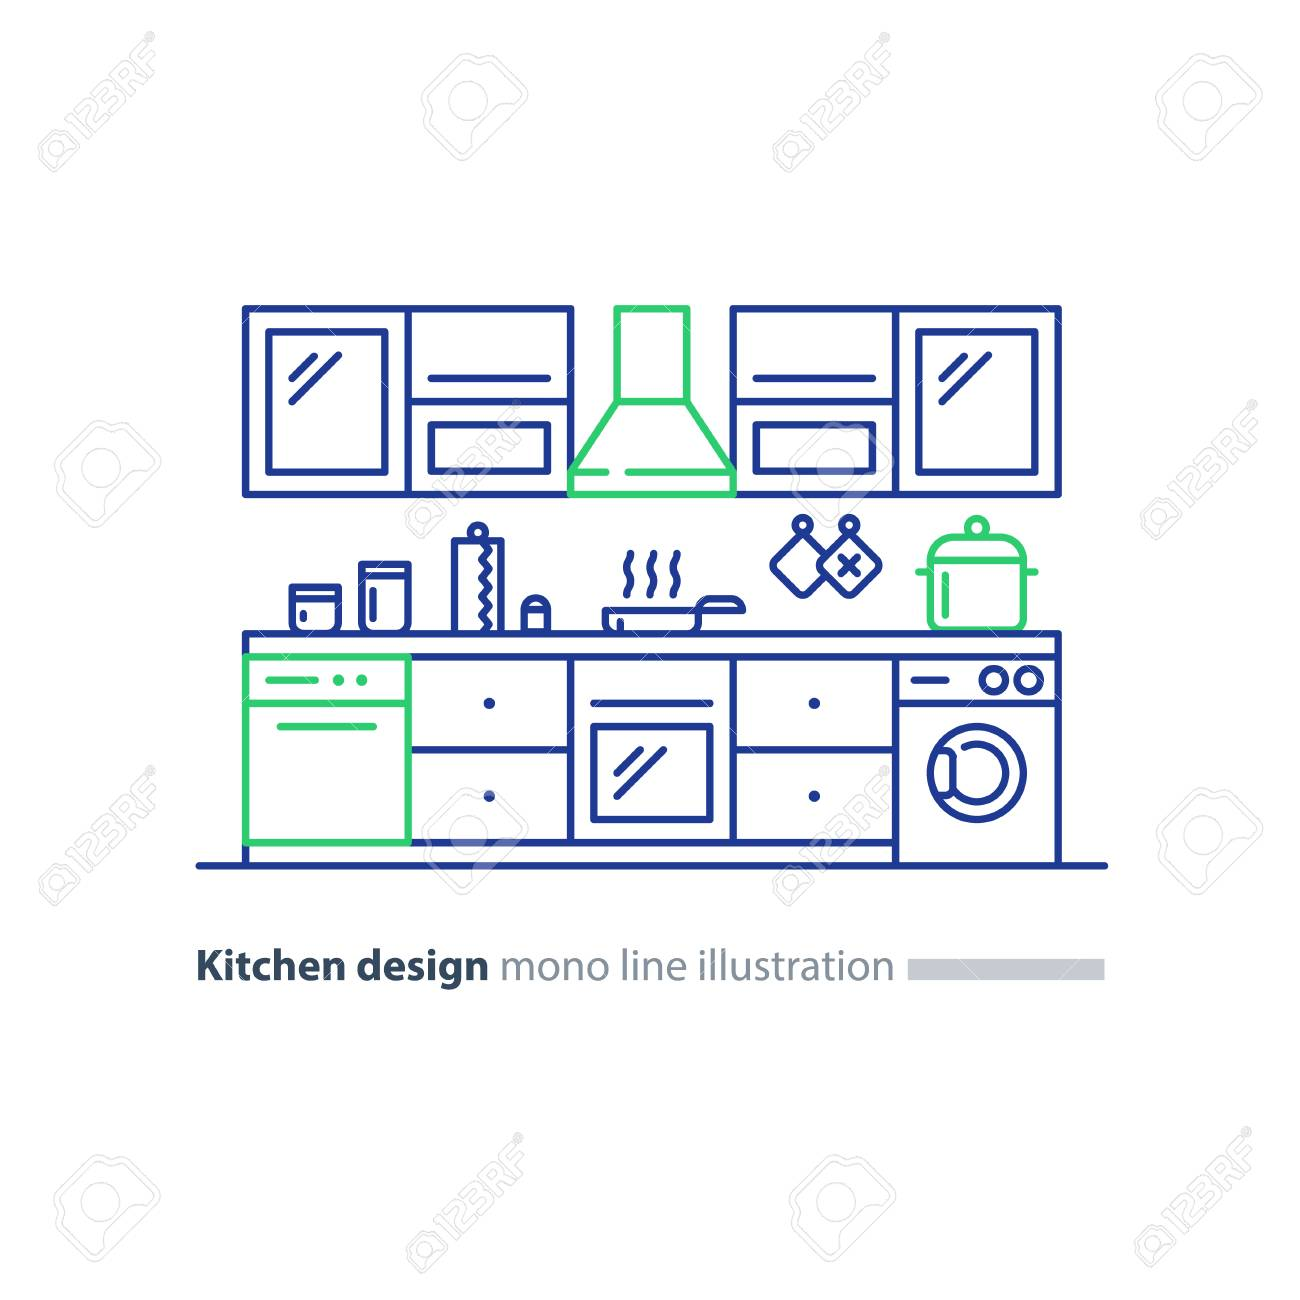 Kitchen design items and elements combination idea vector mono line illustration stock vector